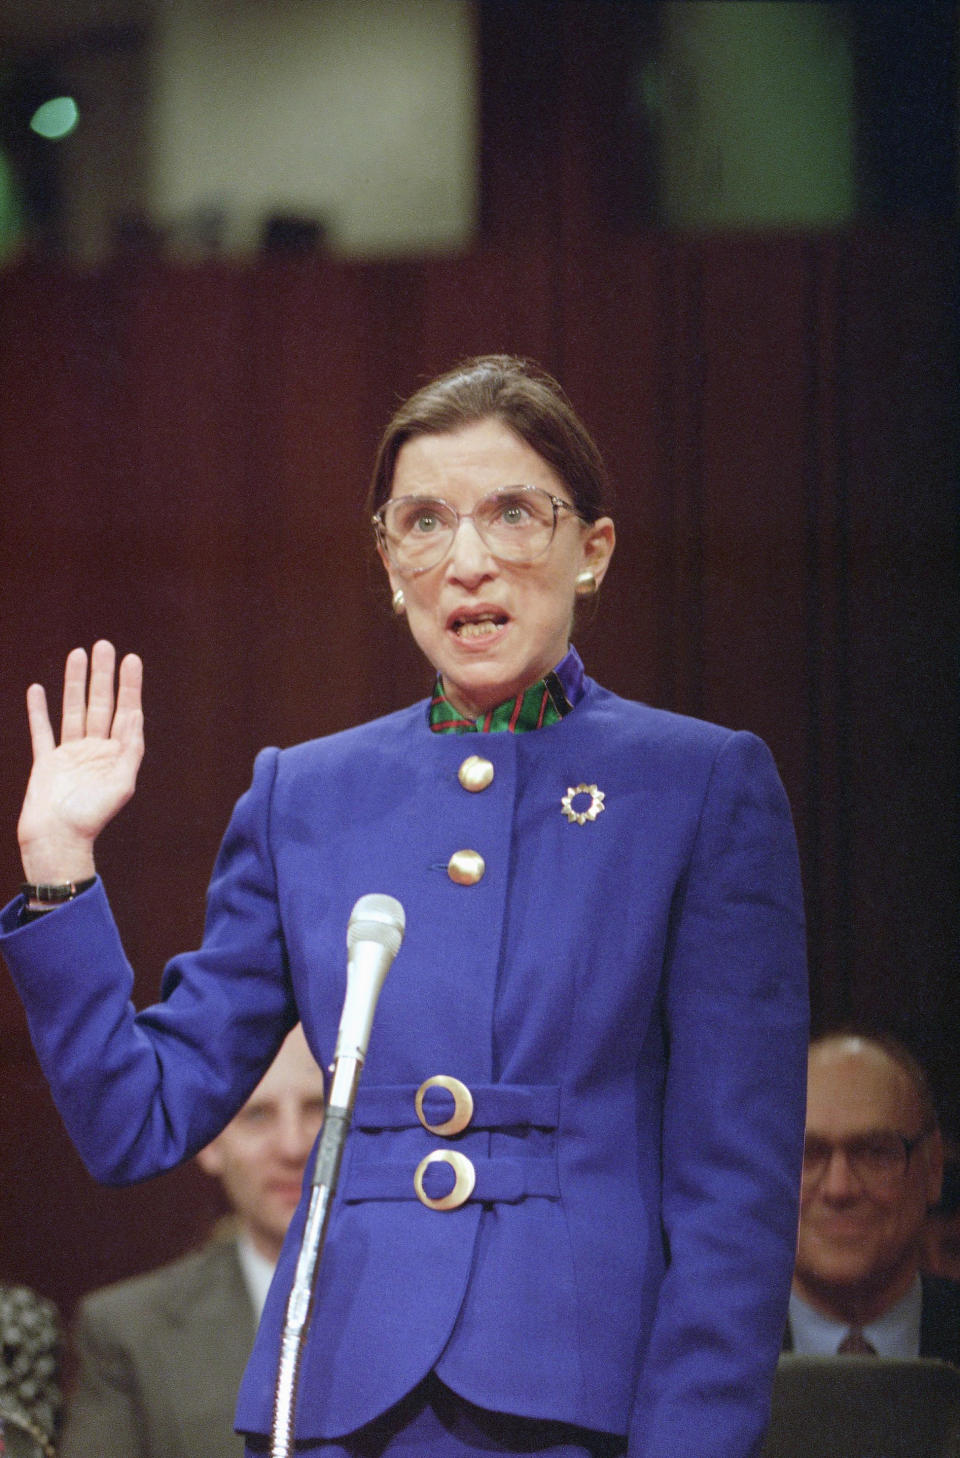 """Supreme Court nominee Judge Ruth Bader Ginsburg is sworn in to her confirmation hearing of the Senate Judiciary Committee on Capitol Hill. Ginsburg told the committee that while she rose """"on the shoulders"""" of women's rights pioneers, advocacy is not her vision of a justice's role. (Photo: Doug Mills/AP)"""